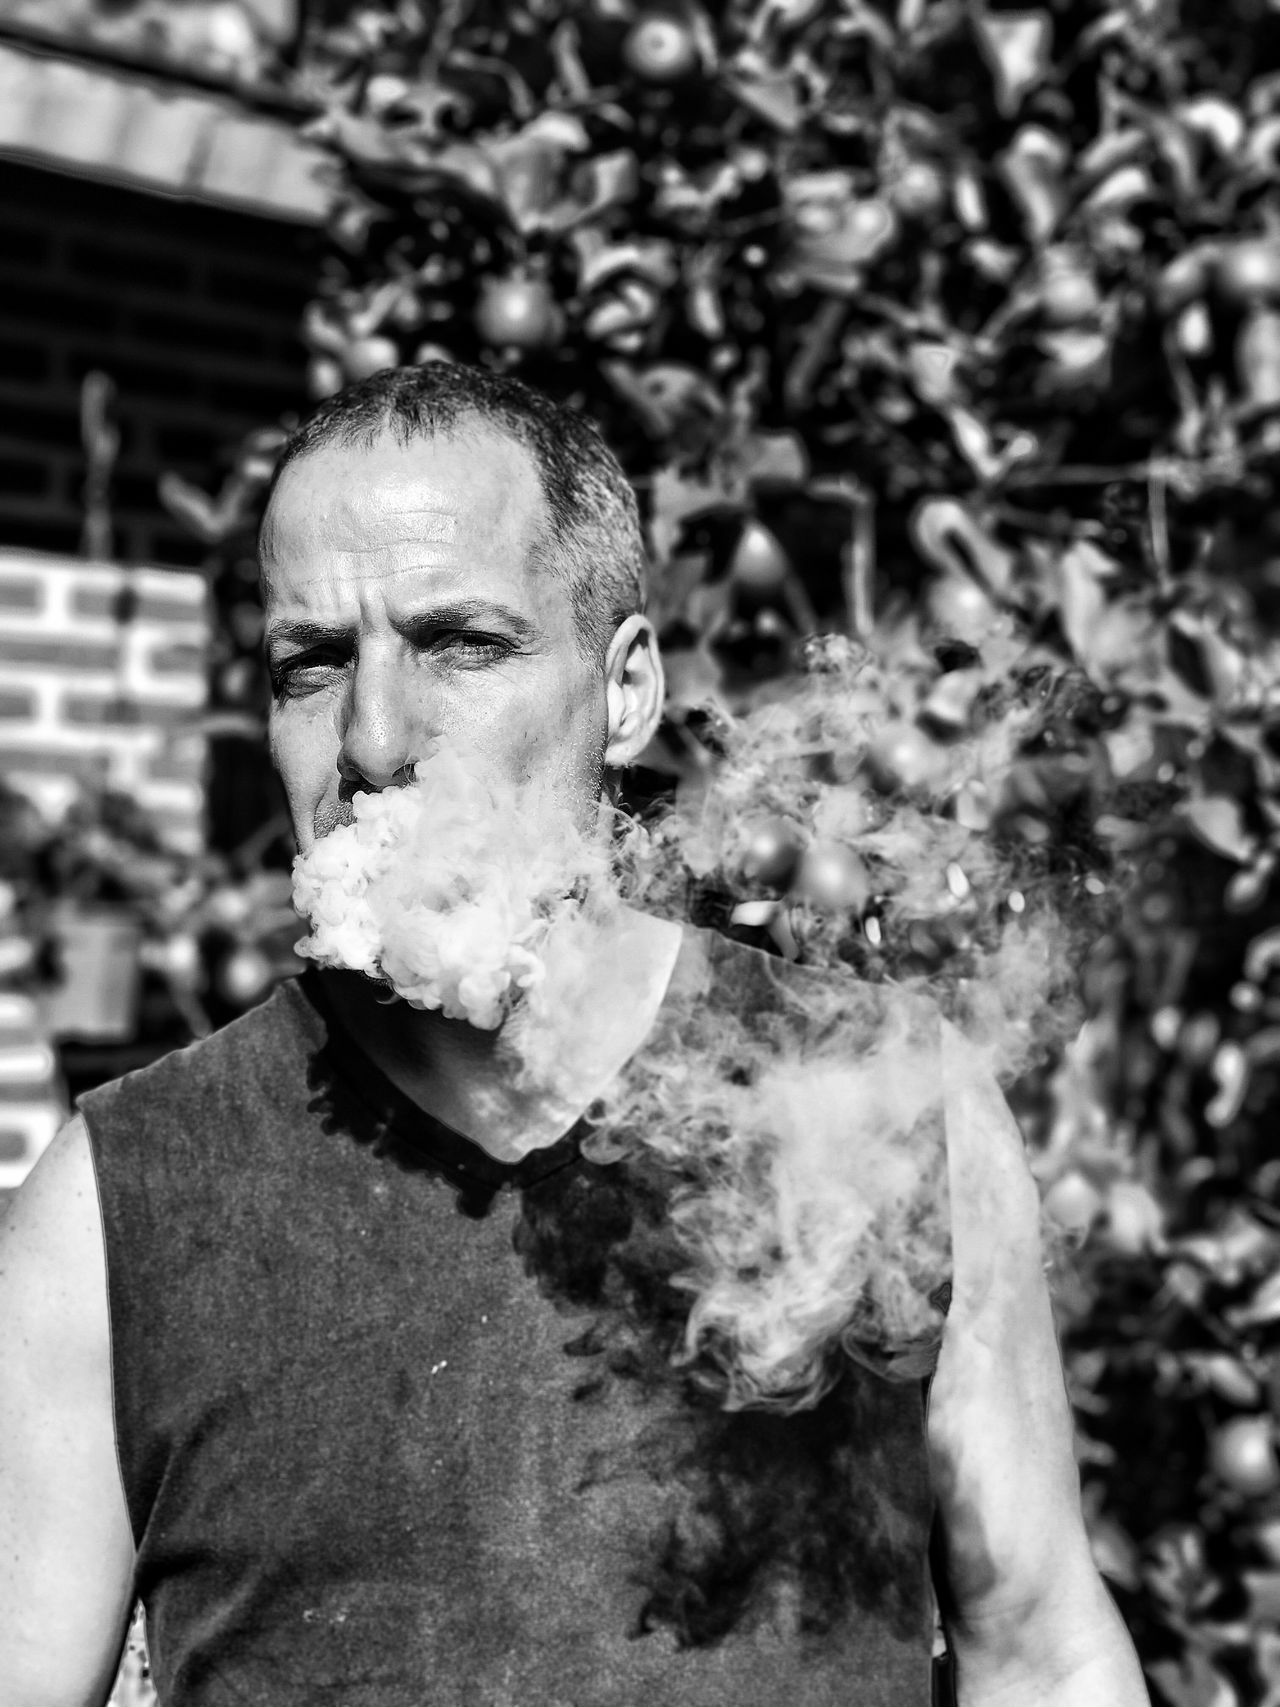 Lifestyles Real People Danger RISK Leisure Activity Looking At Camera Mid Adult One Person Front View Portrait Headshot Outdoors Day Close-up Looking At Camera Black And White Photography Blsckandwhite Blackandwhite Black And White Black & White Portrait Of A Friend Human Face Smokers VapeLife Vapersofamerica